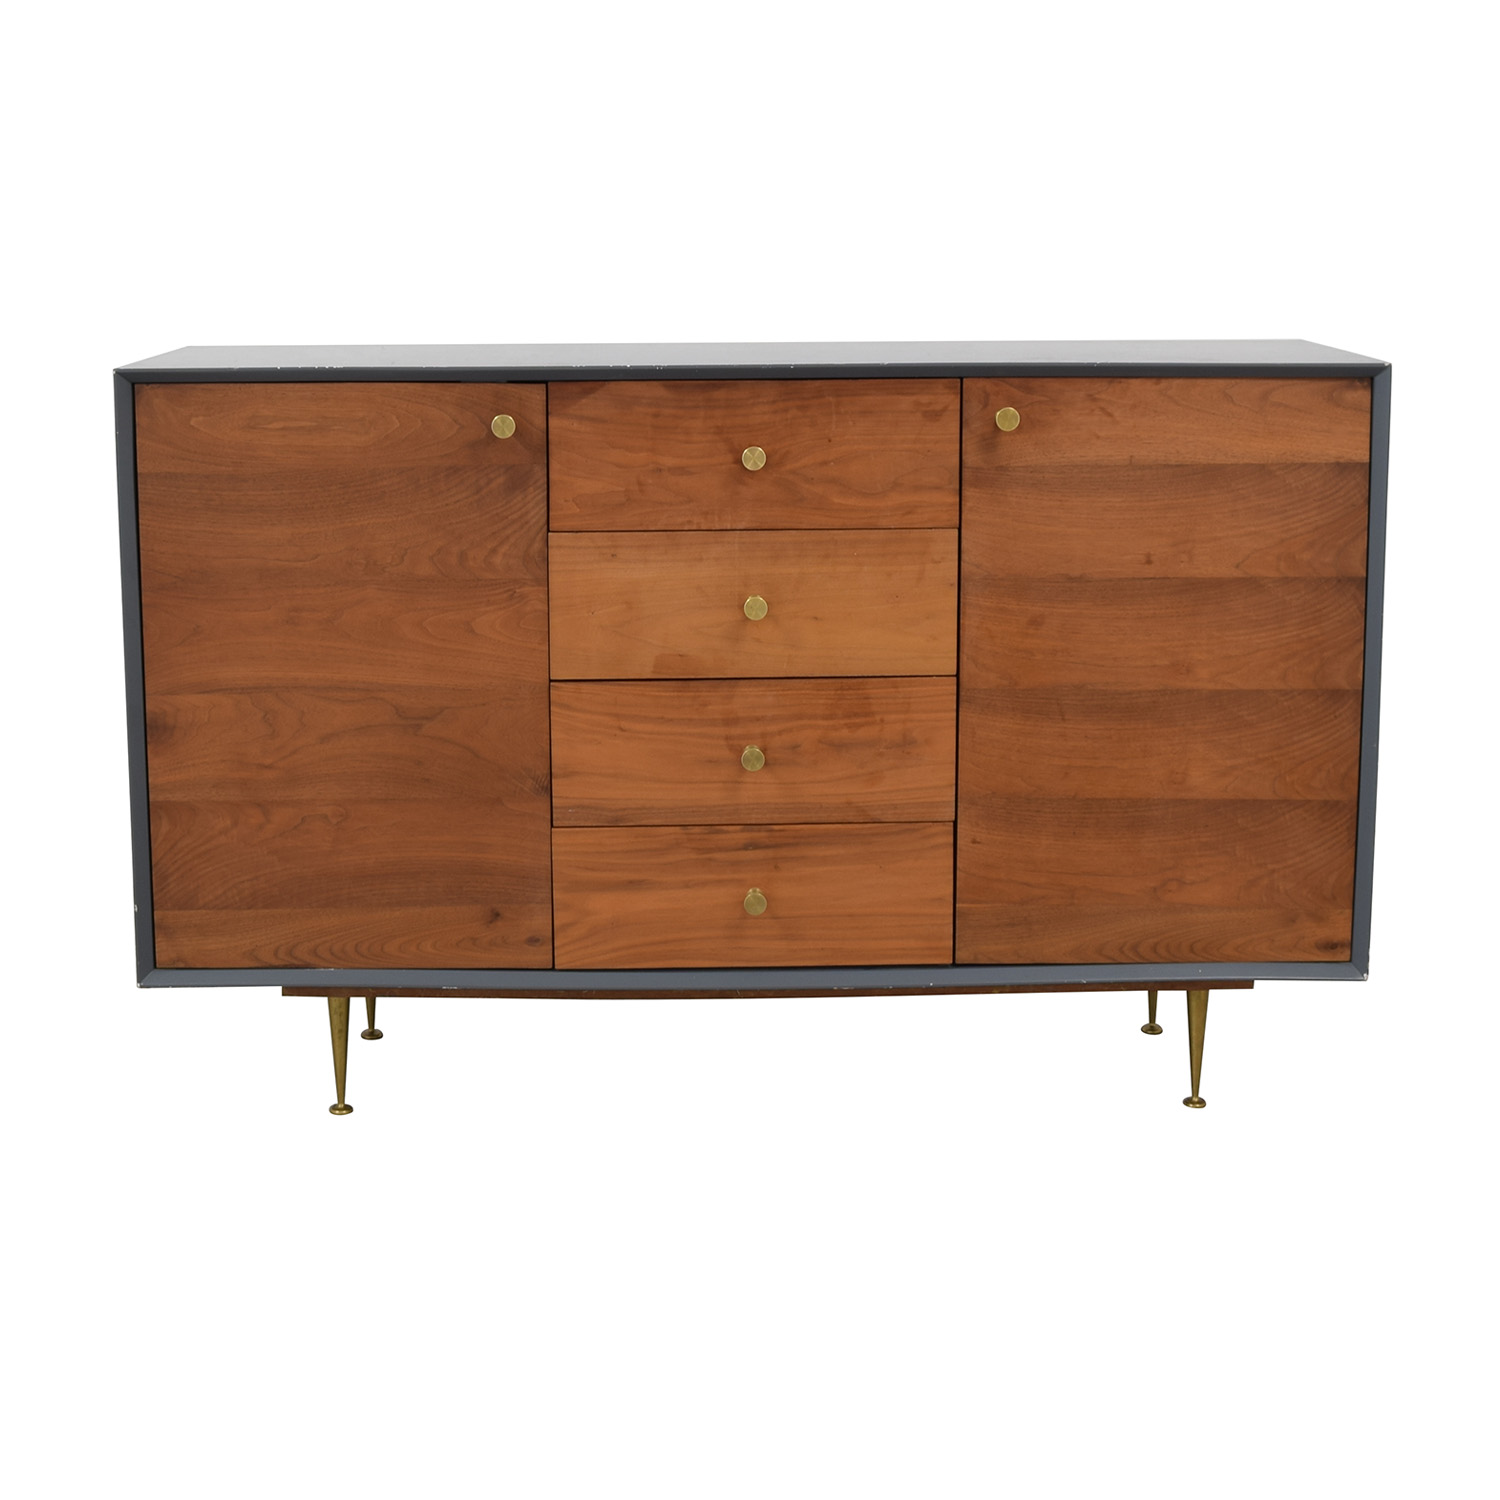 buy Organic Modernism Cincinnati B Wide Credenza Organic Modernism Storage